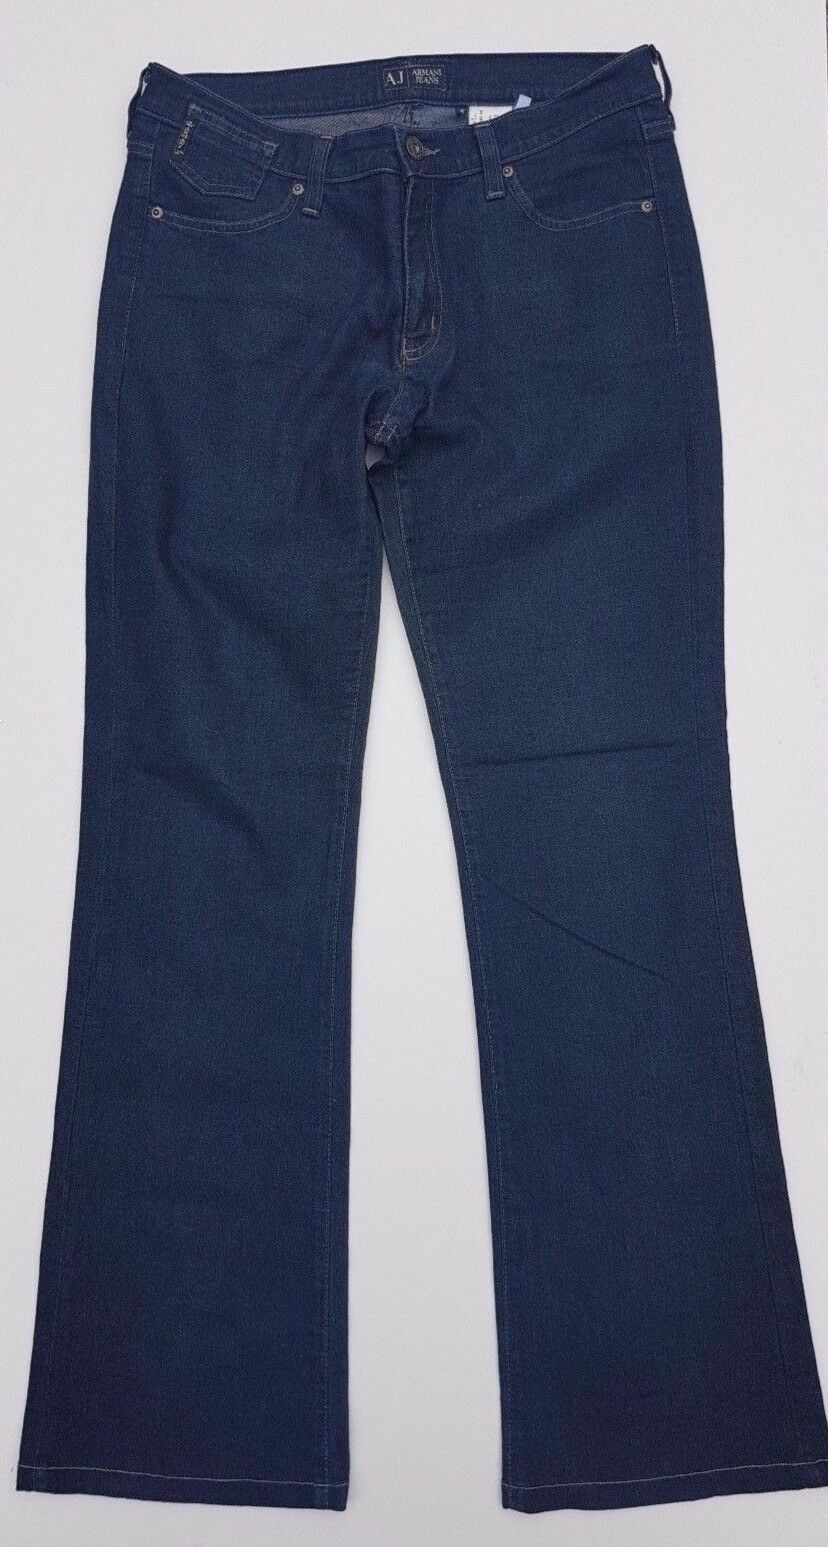 ARMANI COMFORT FIT JEANS SIZE 29 W 40 L Inside L 31 WOMEN'S Eco wash Indigo blueE